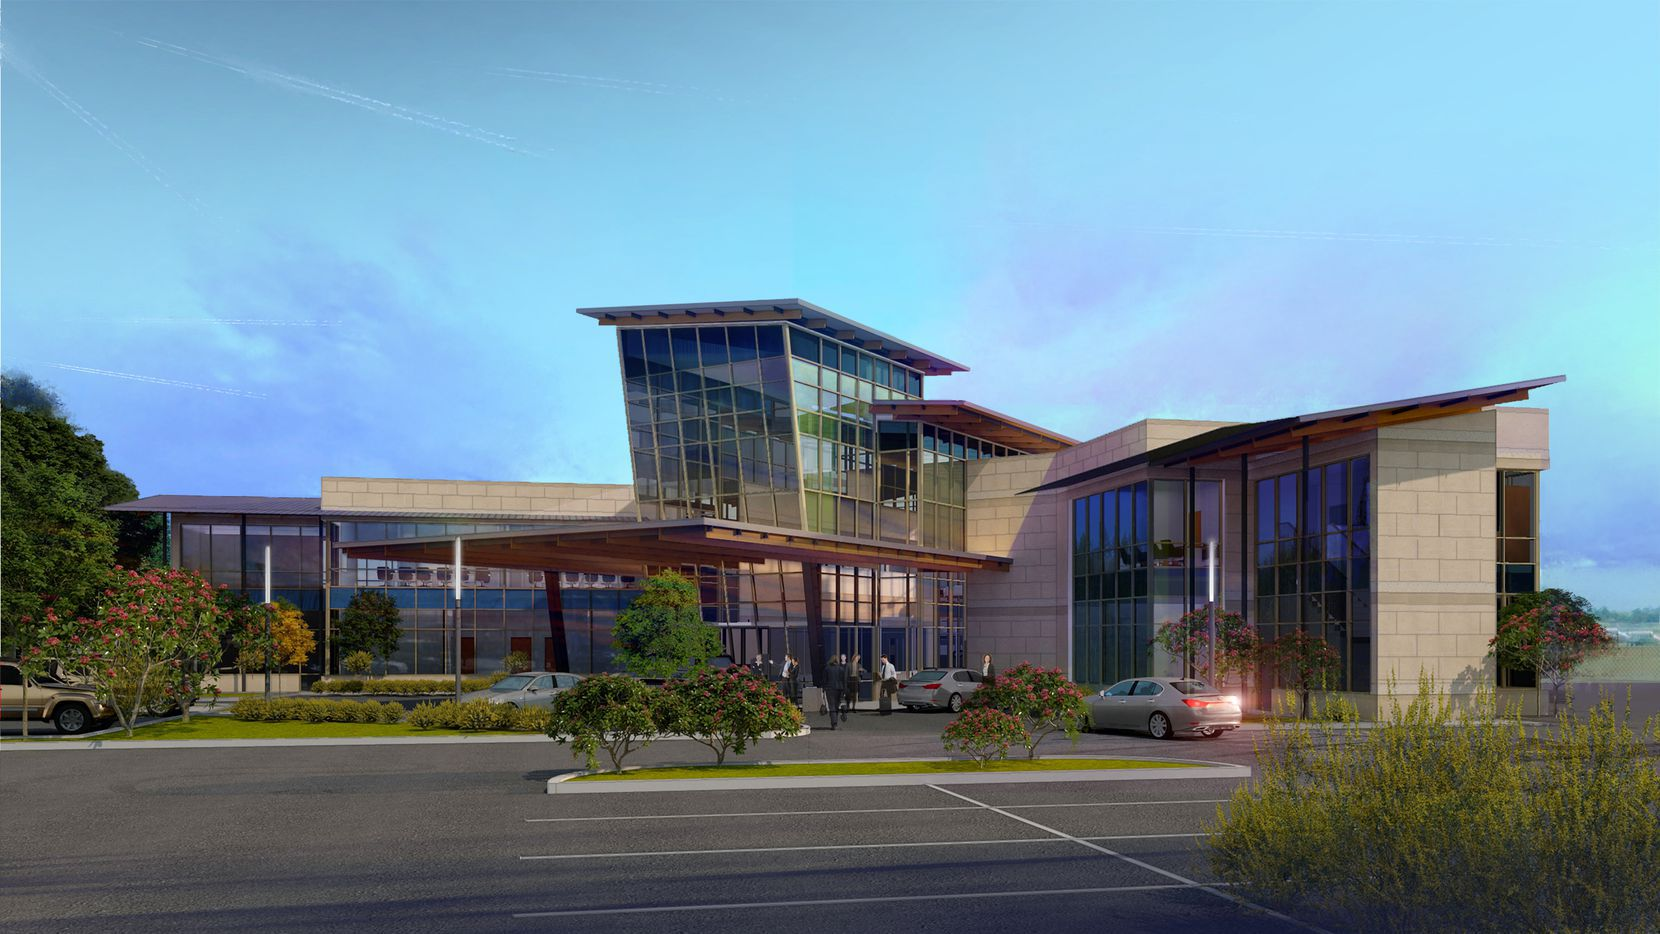 The new executive terminal at McKinney airport will open later this year.